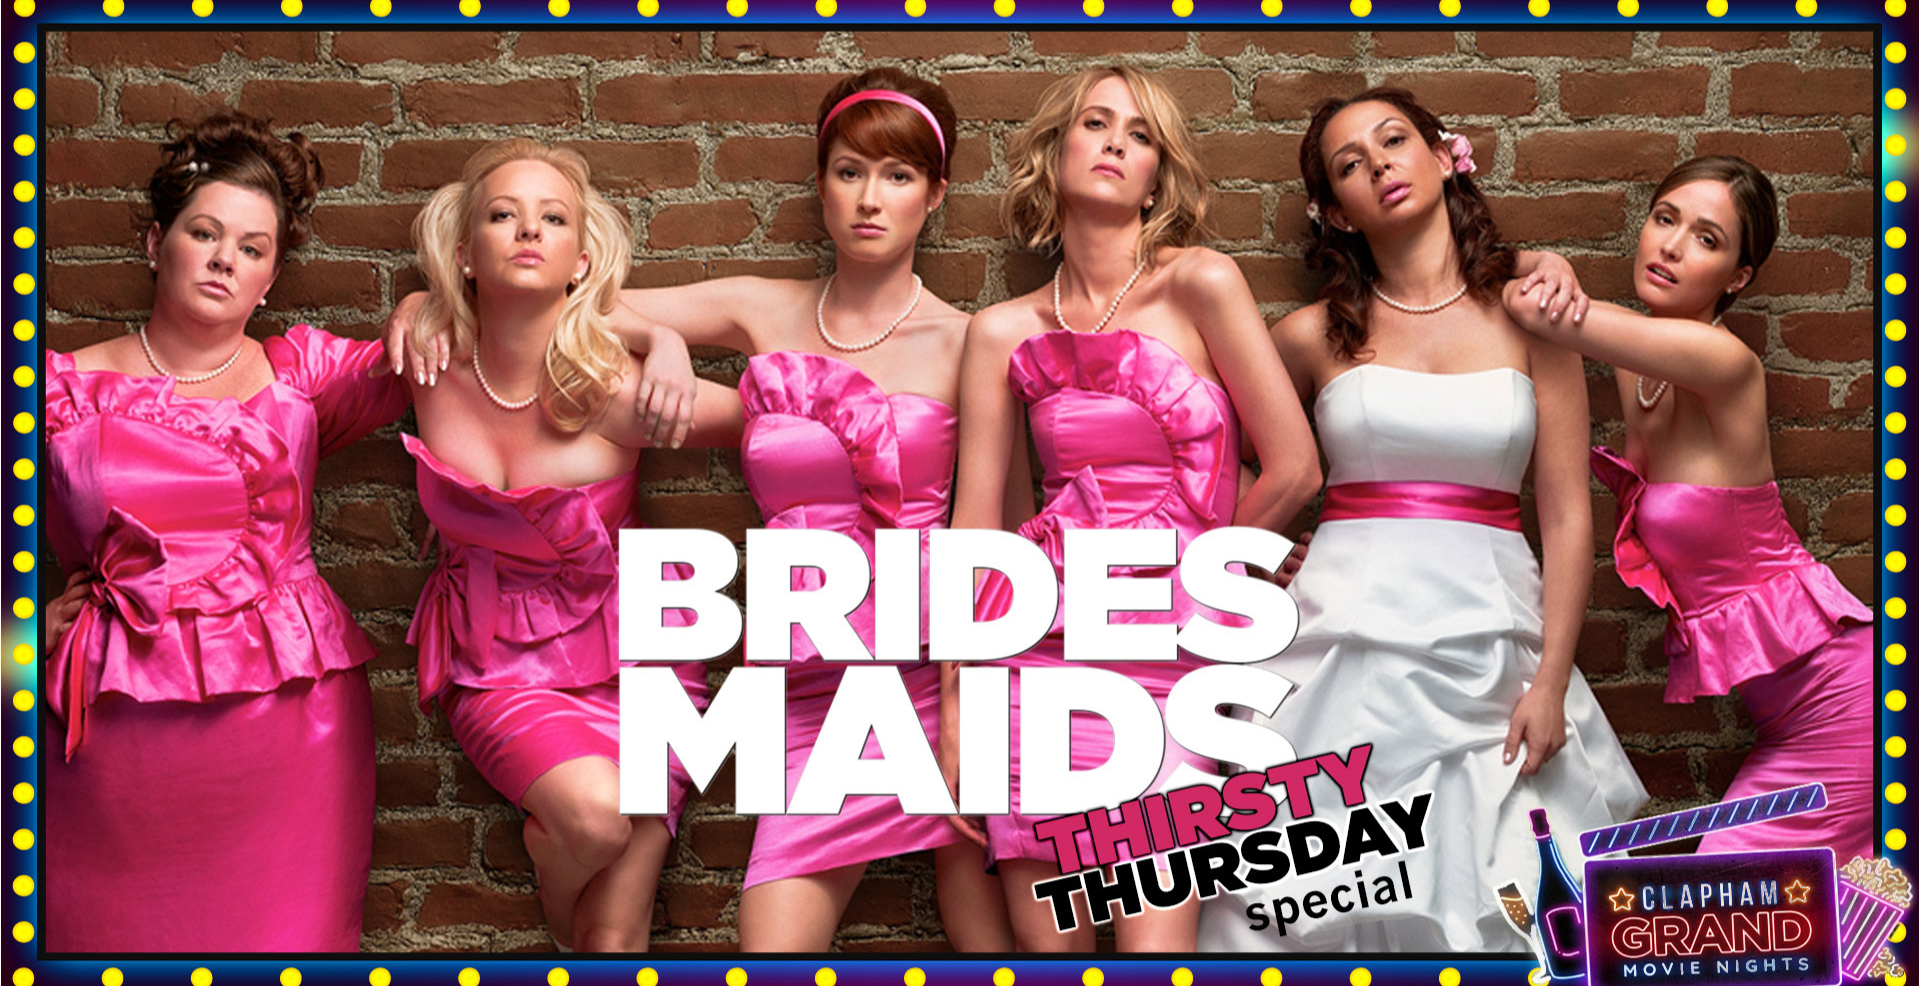 Bridesmaids Drink-Along Movie Night - Thirsty Thursday Special